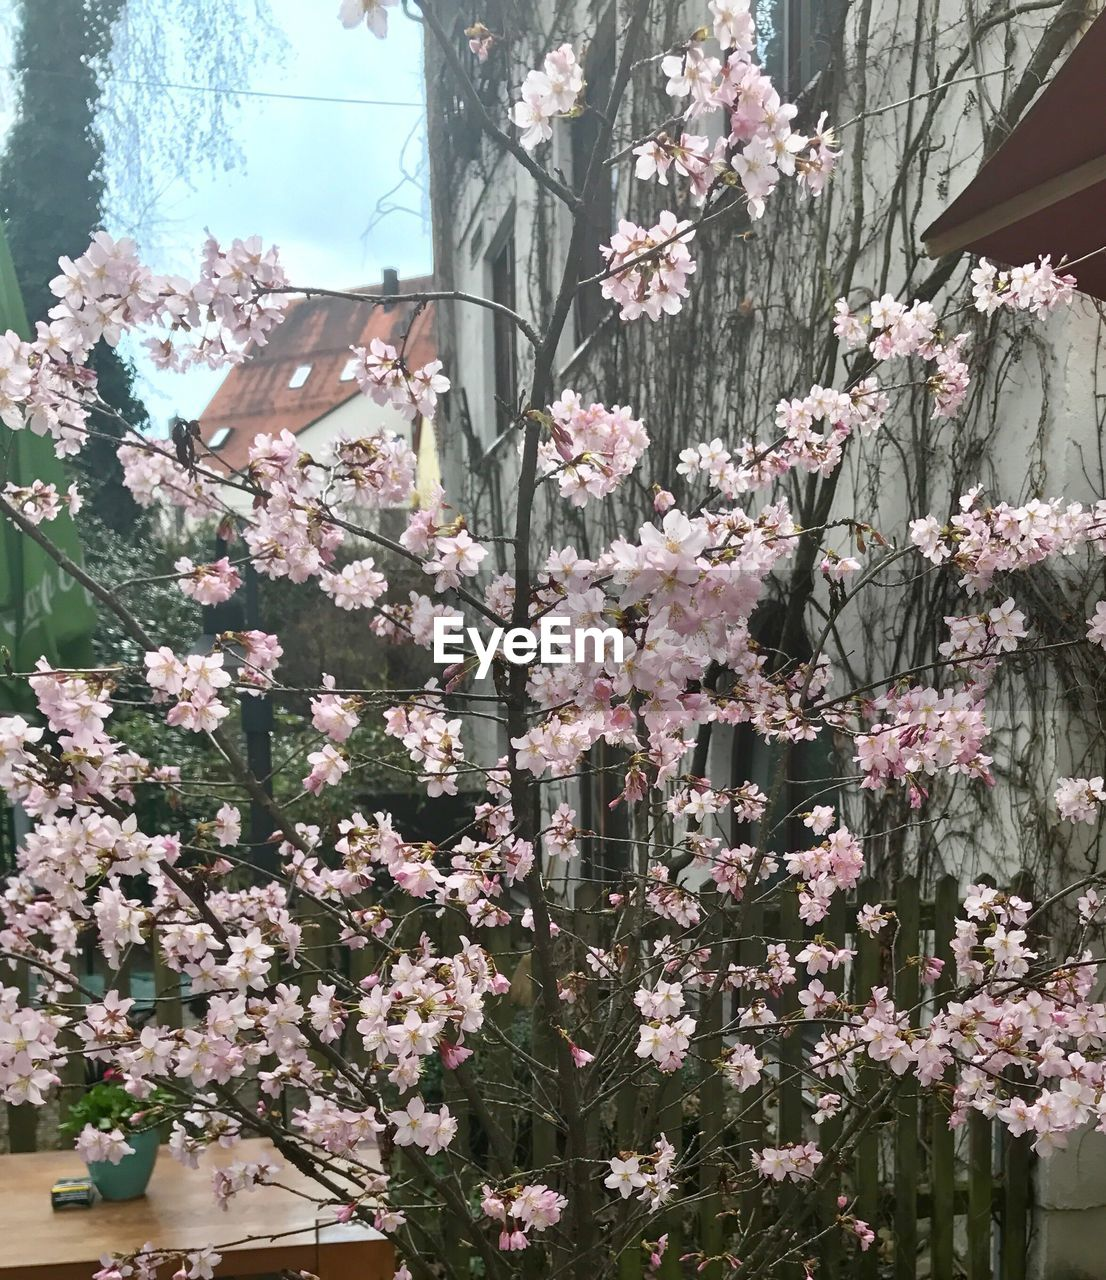 flower, growth, blossom, tree, nature, no people, fragility, day, spring, beauty in nature, blooming, branch, outdoors, freshness, close-up